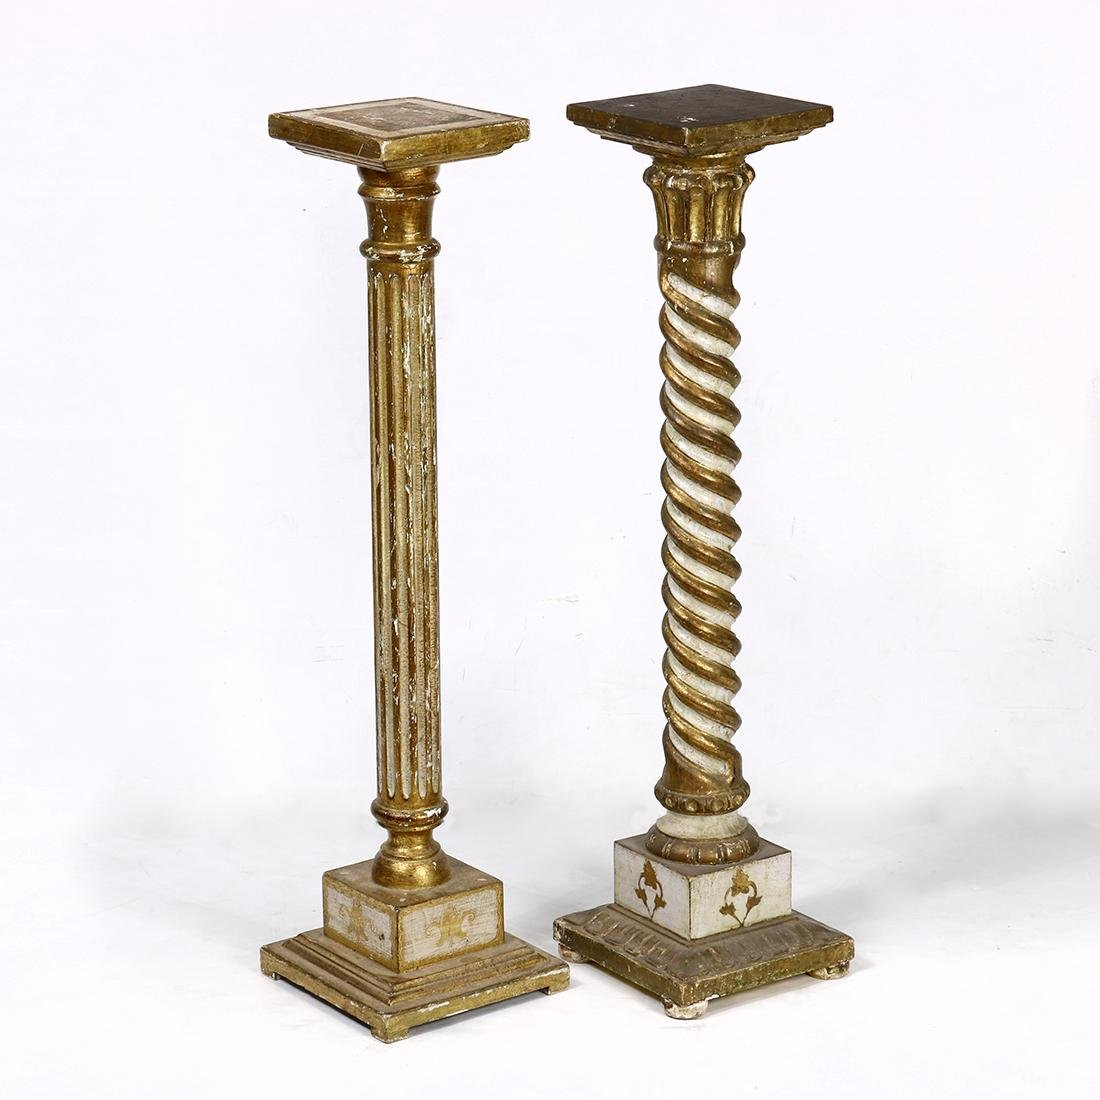 (lot of 2) Neoclassical style gilt and paint decorated